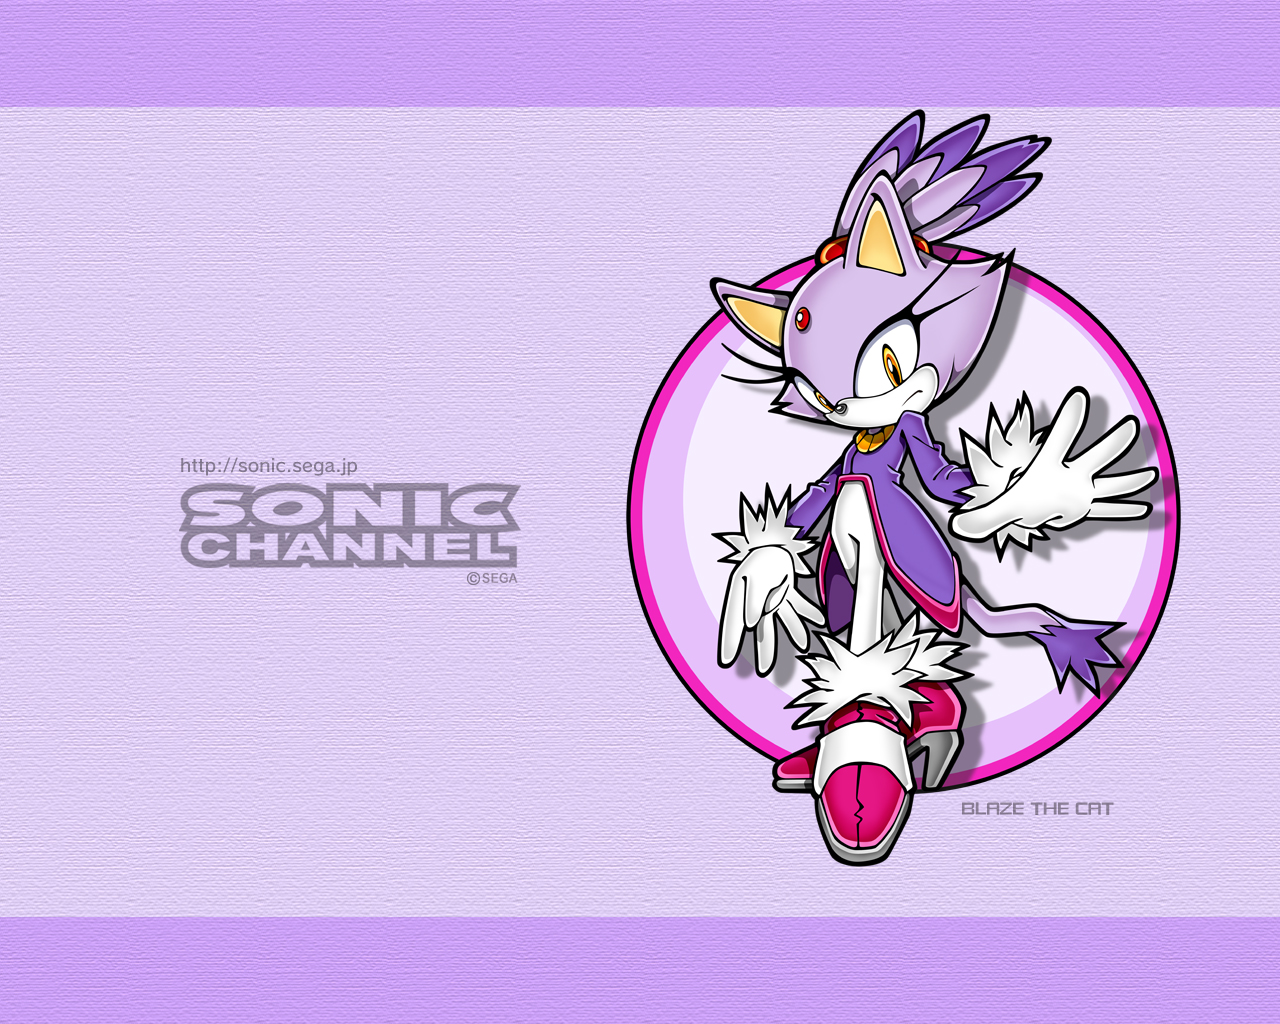 Sonic Channel Images Blaze Wallpaper Hd Wallpaper And Background